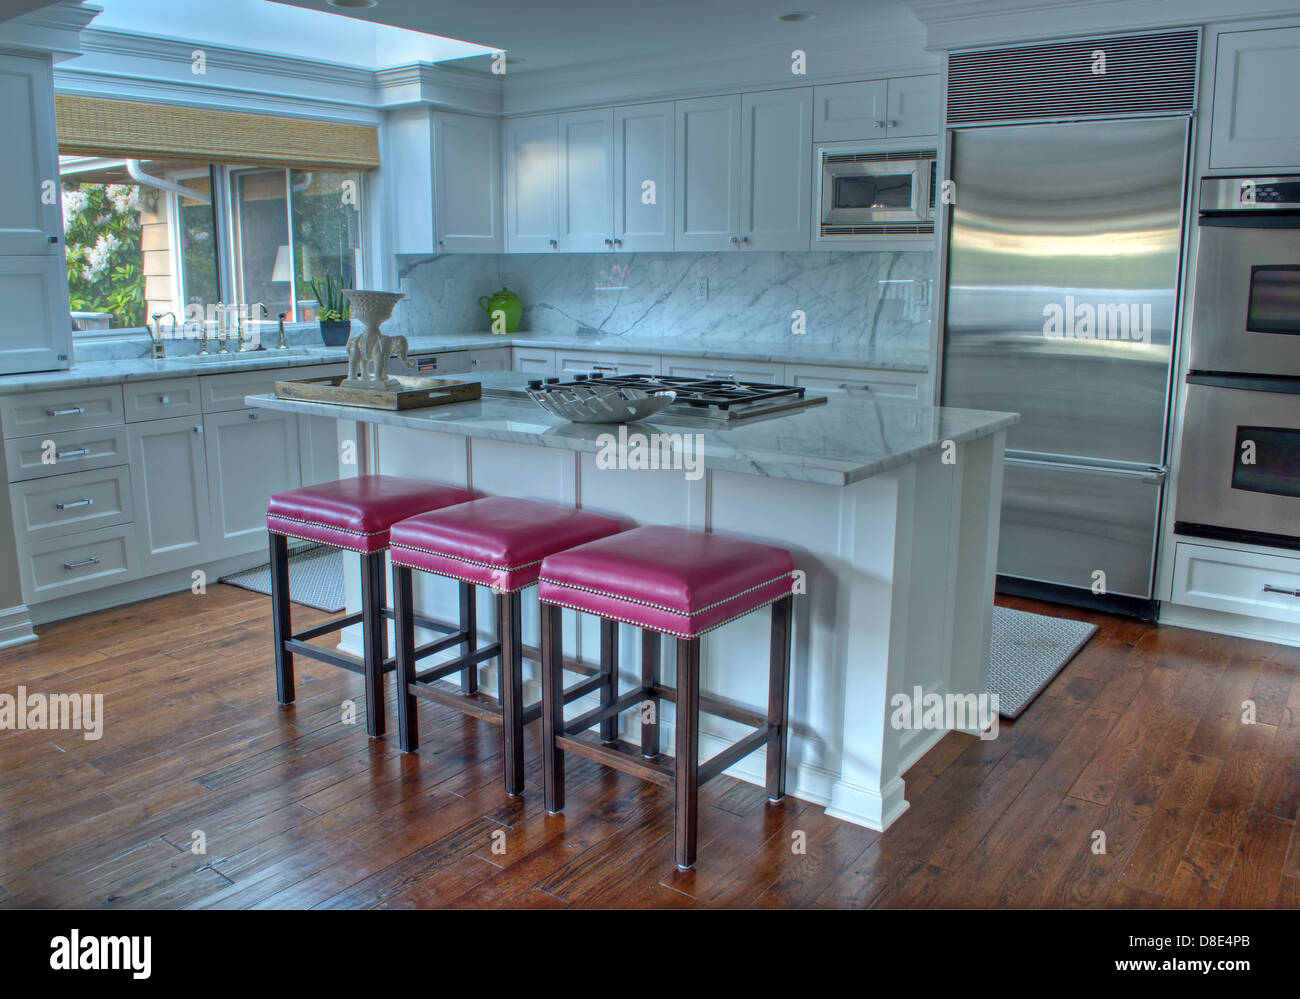 Pink Bar Stools Stock Photos & Pink Bar Stools Stock Images - Alamy